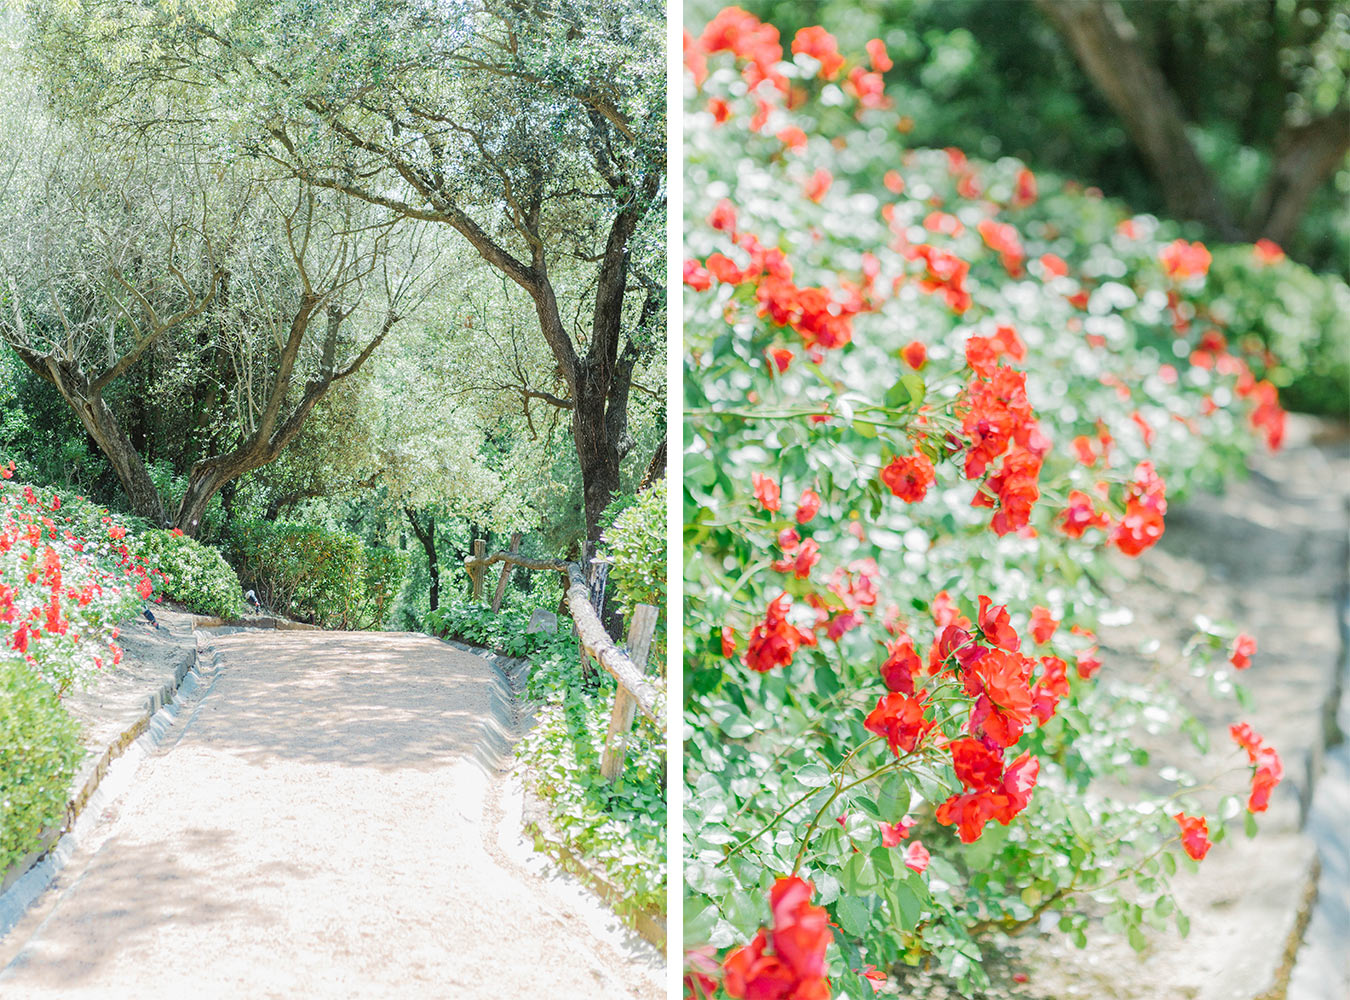 Castell de Emporda, Girona. Destination wedding photographer - Lena Karelova, Barcelona photographer